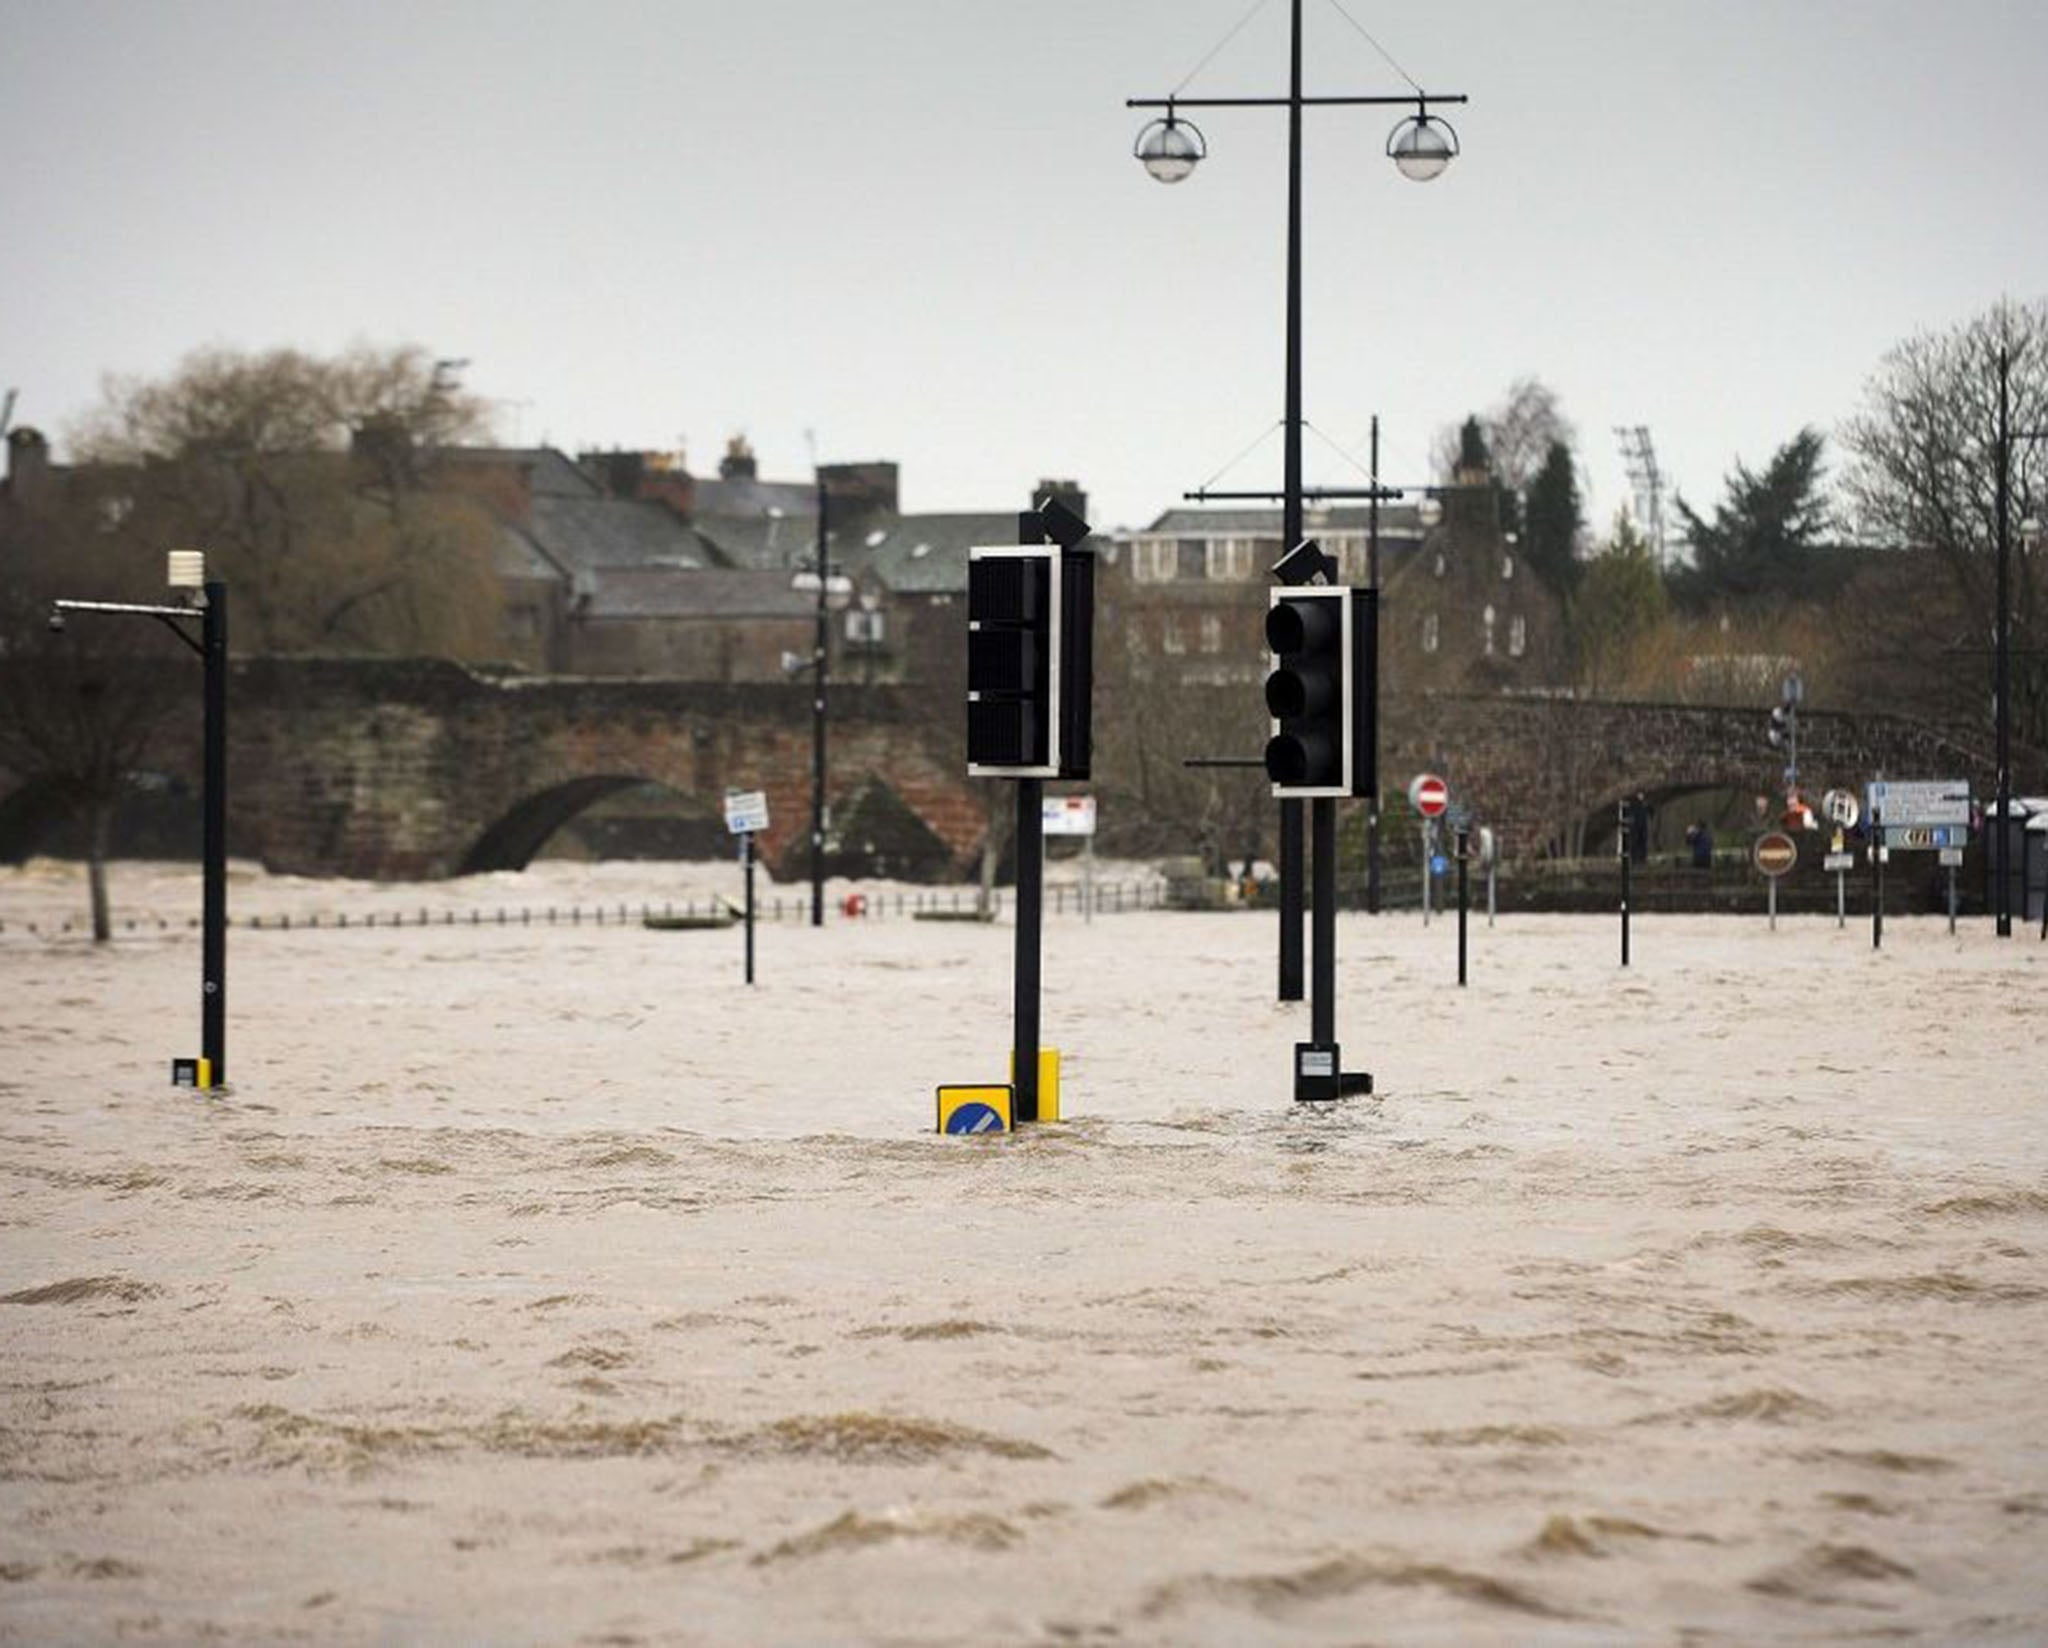 UK flooding driven by soaring temperatures in Greenland, study says